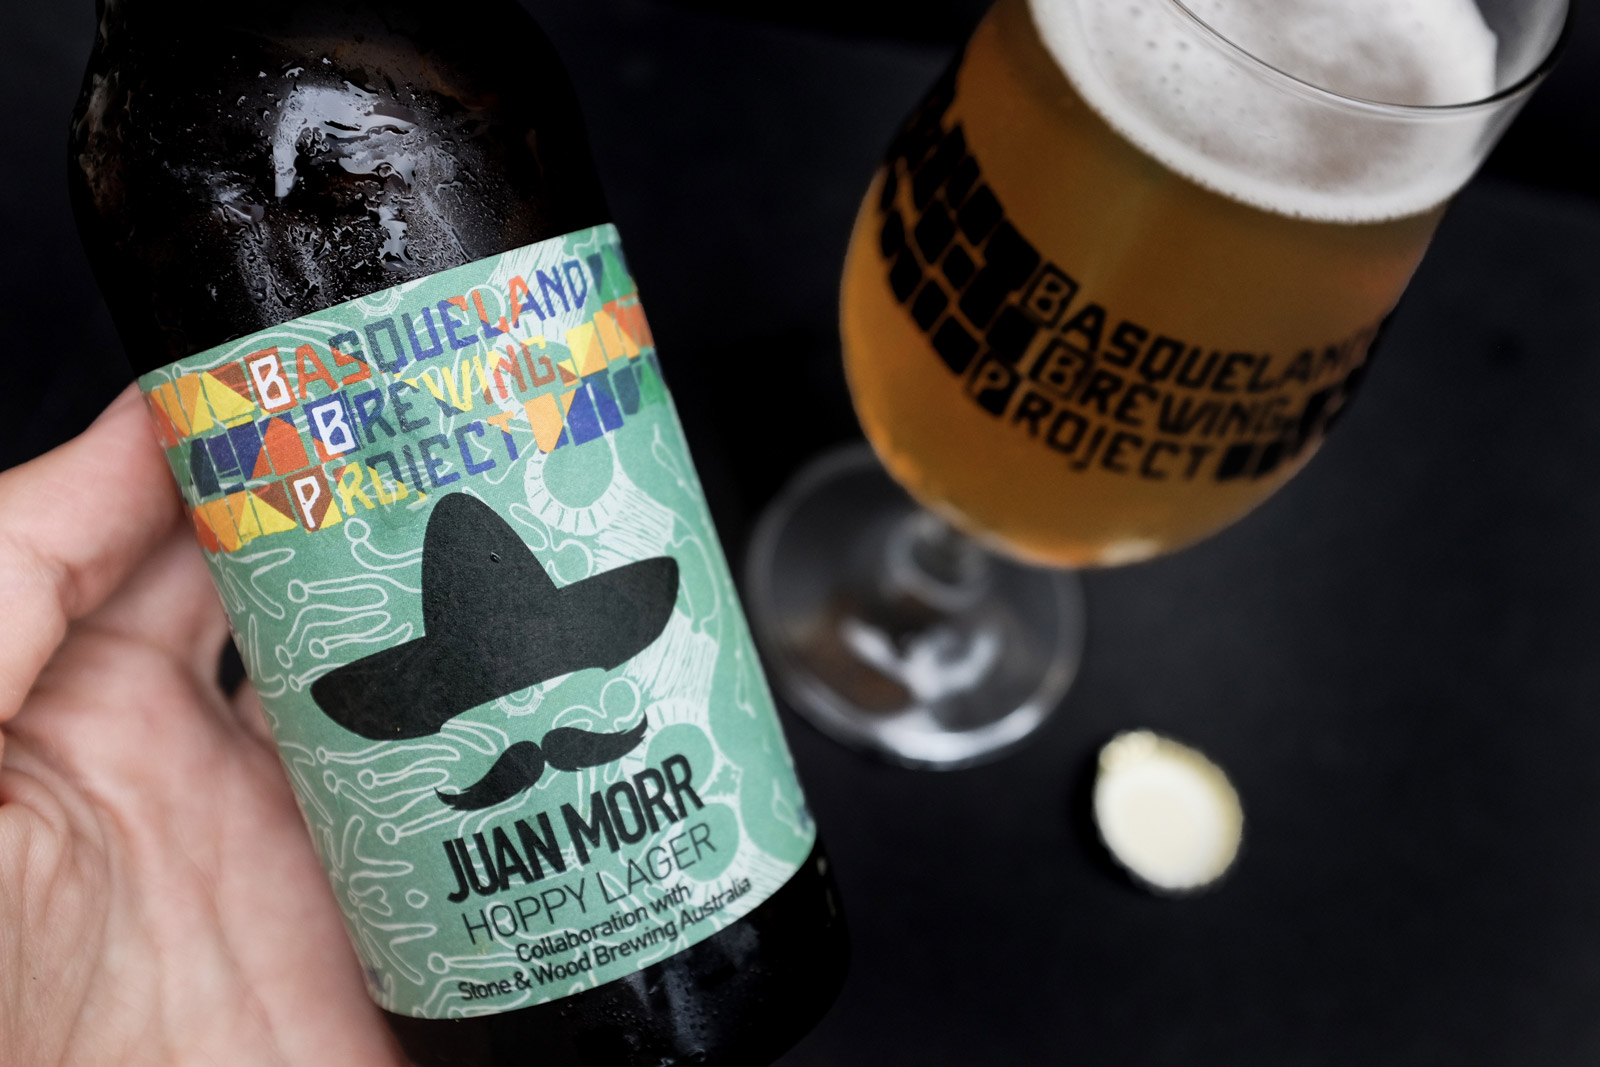 Basqueland Brewing - Juan Morr beer